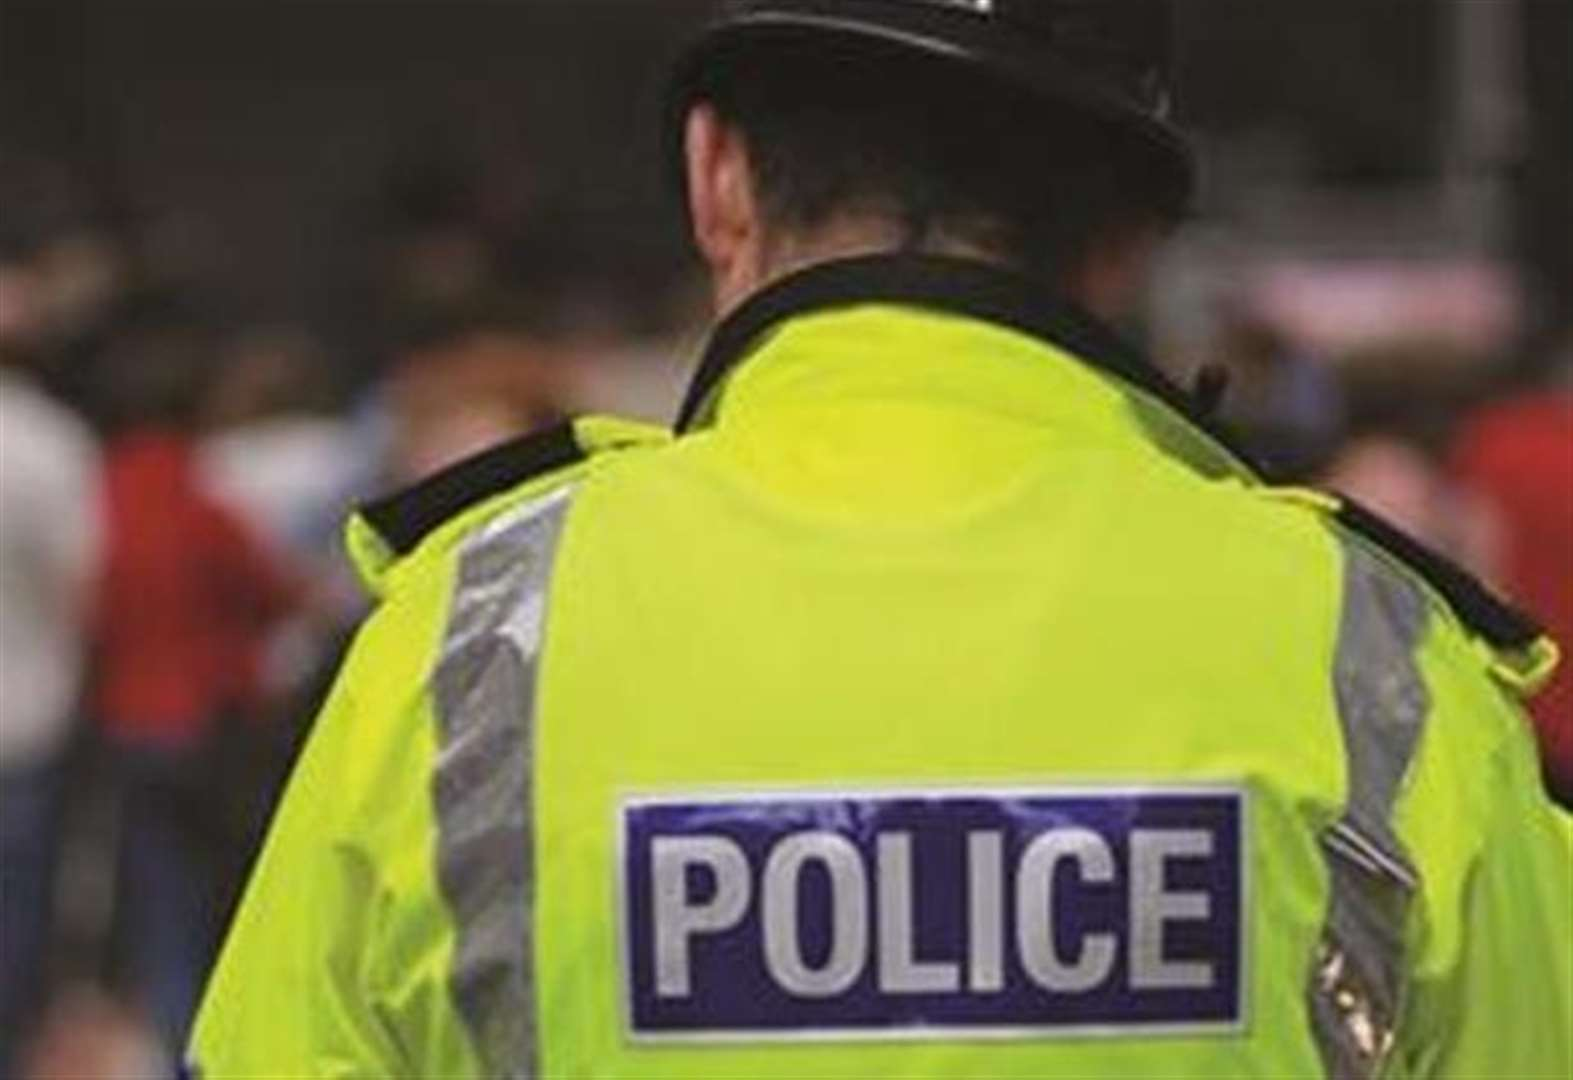 Plans to cut PCSOs in Suffolk by half set to go ahead